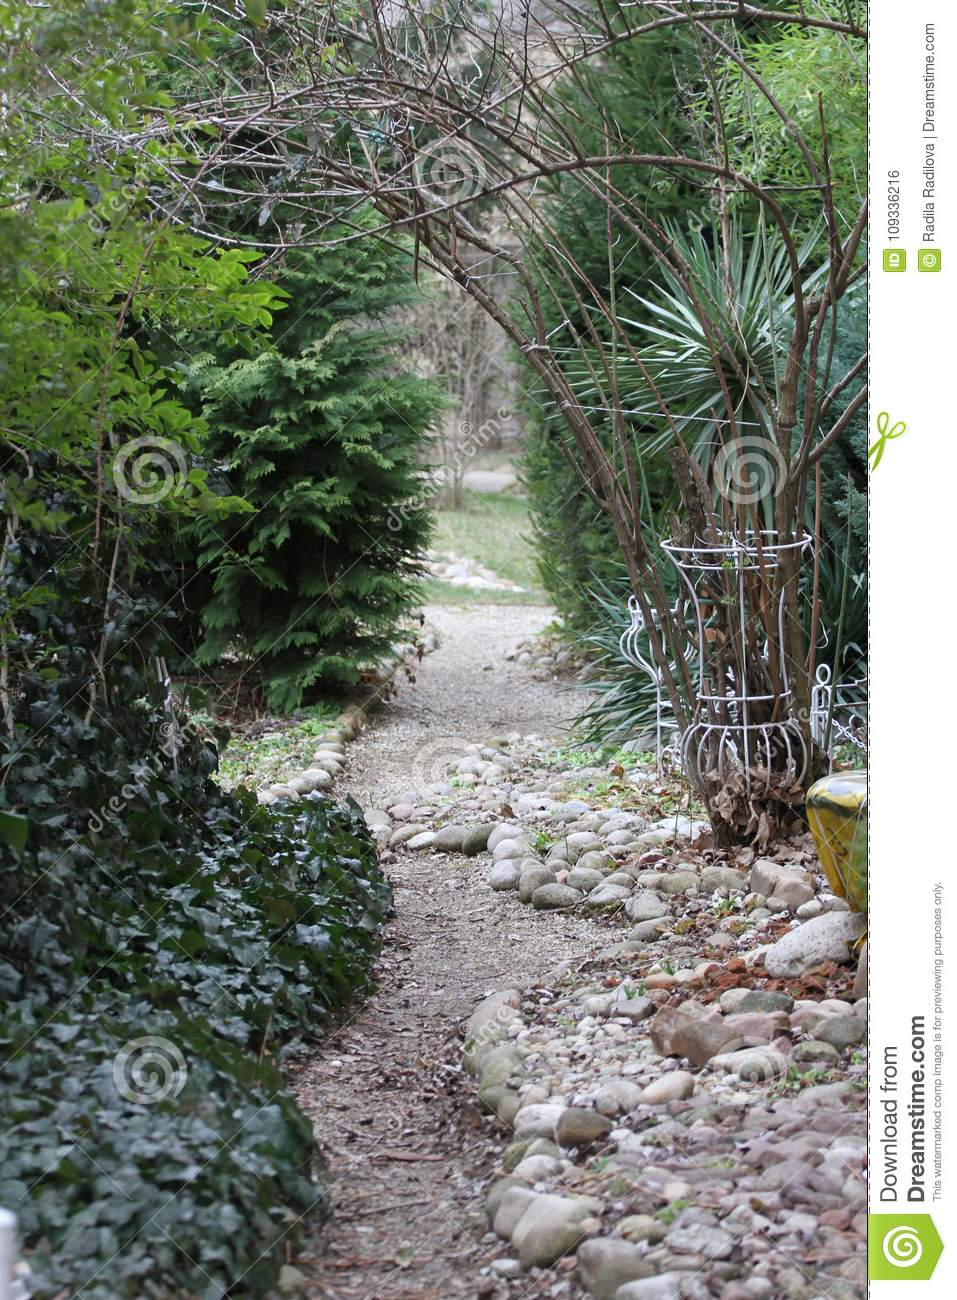 Path through the green garden. Pathway through green forest. Natural green frame with copy space. Stones pathway in garden.